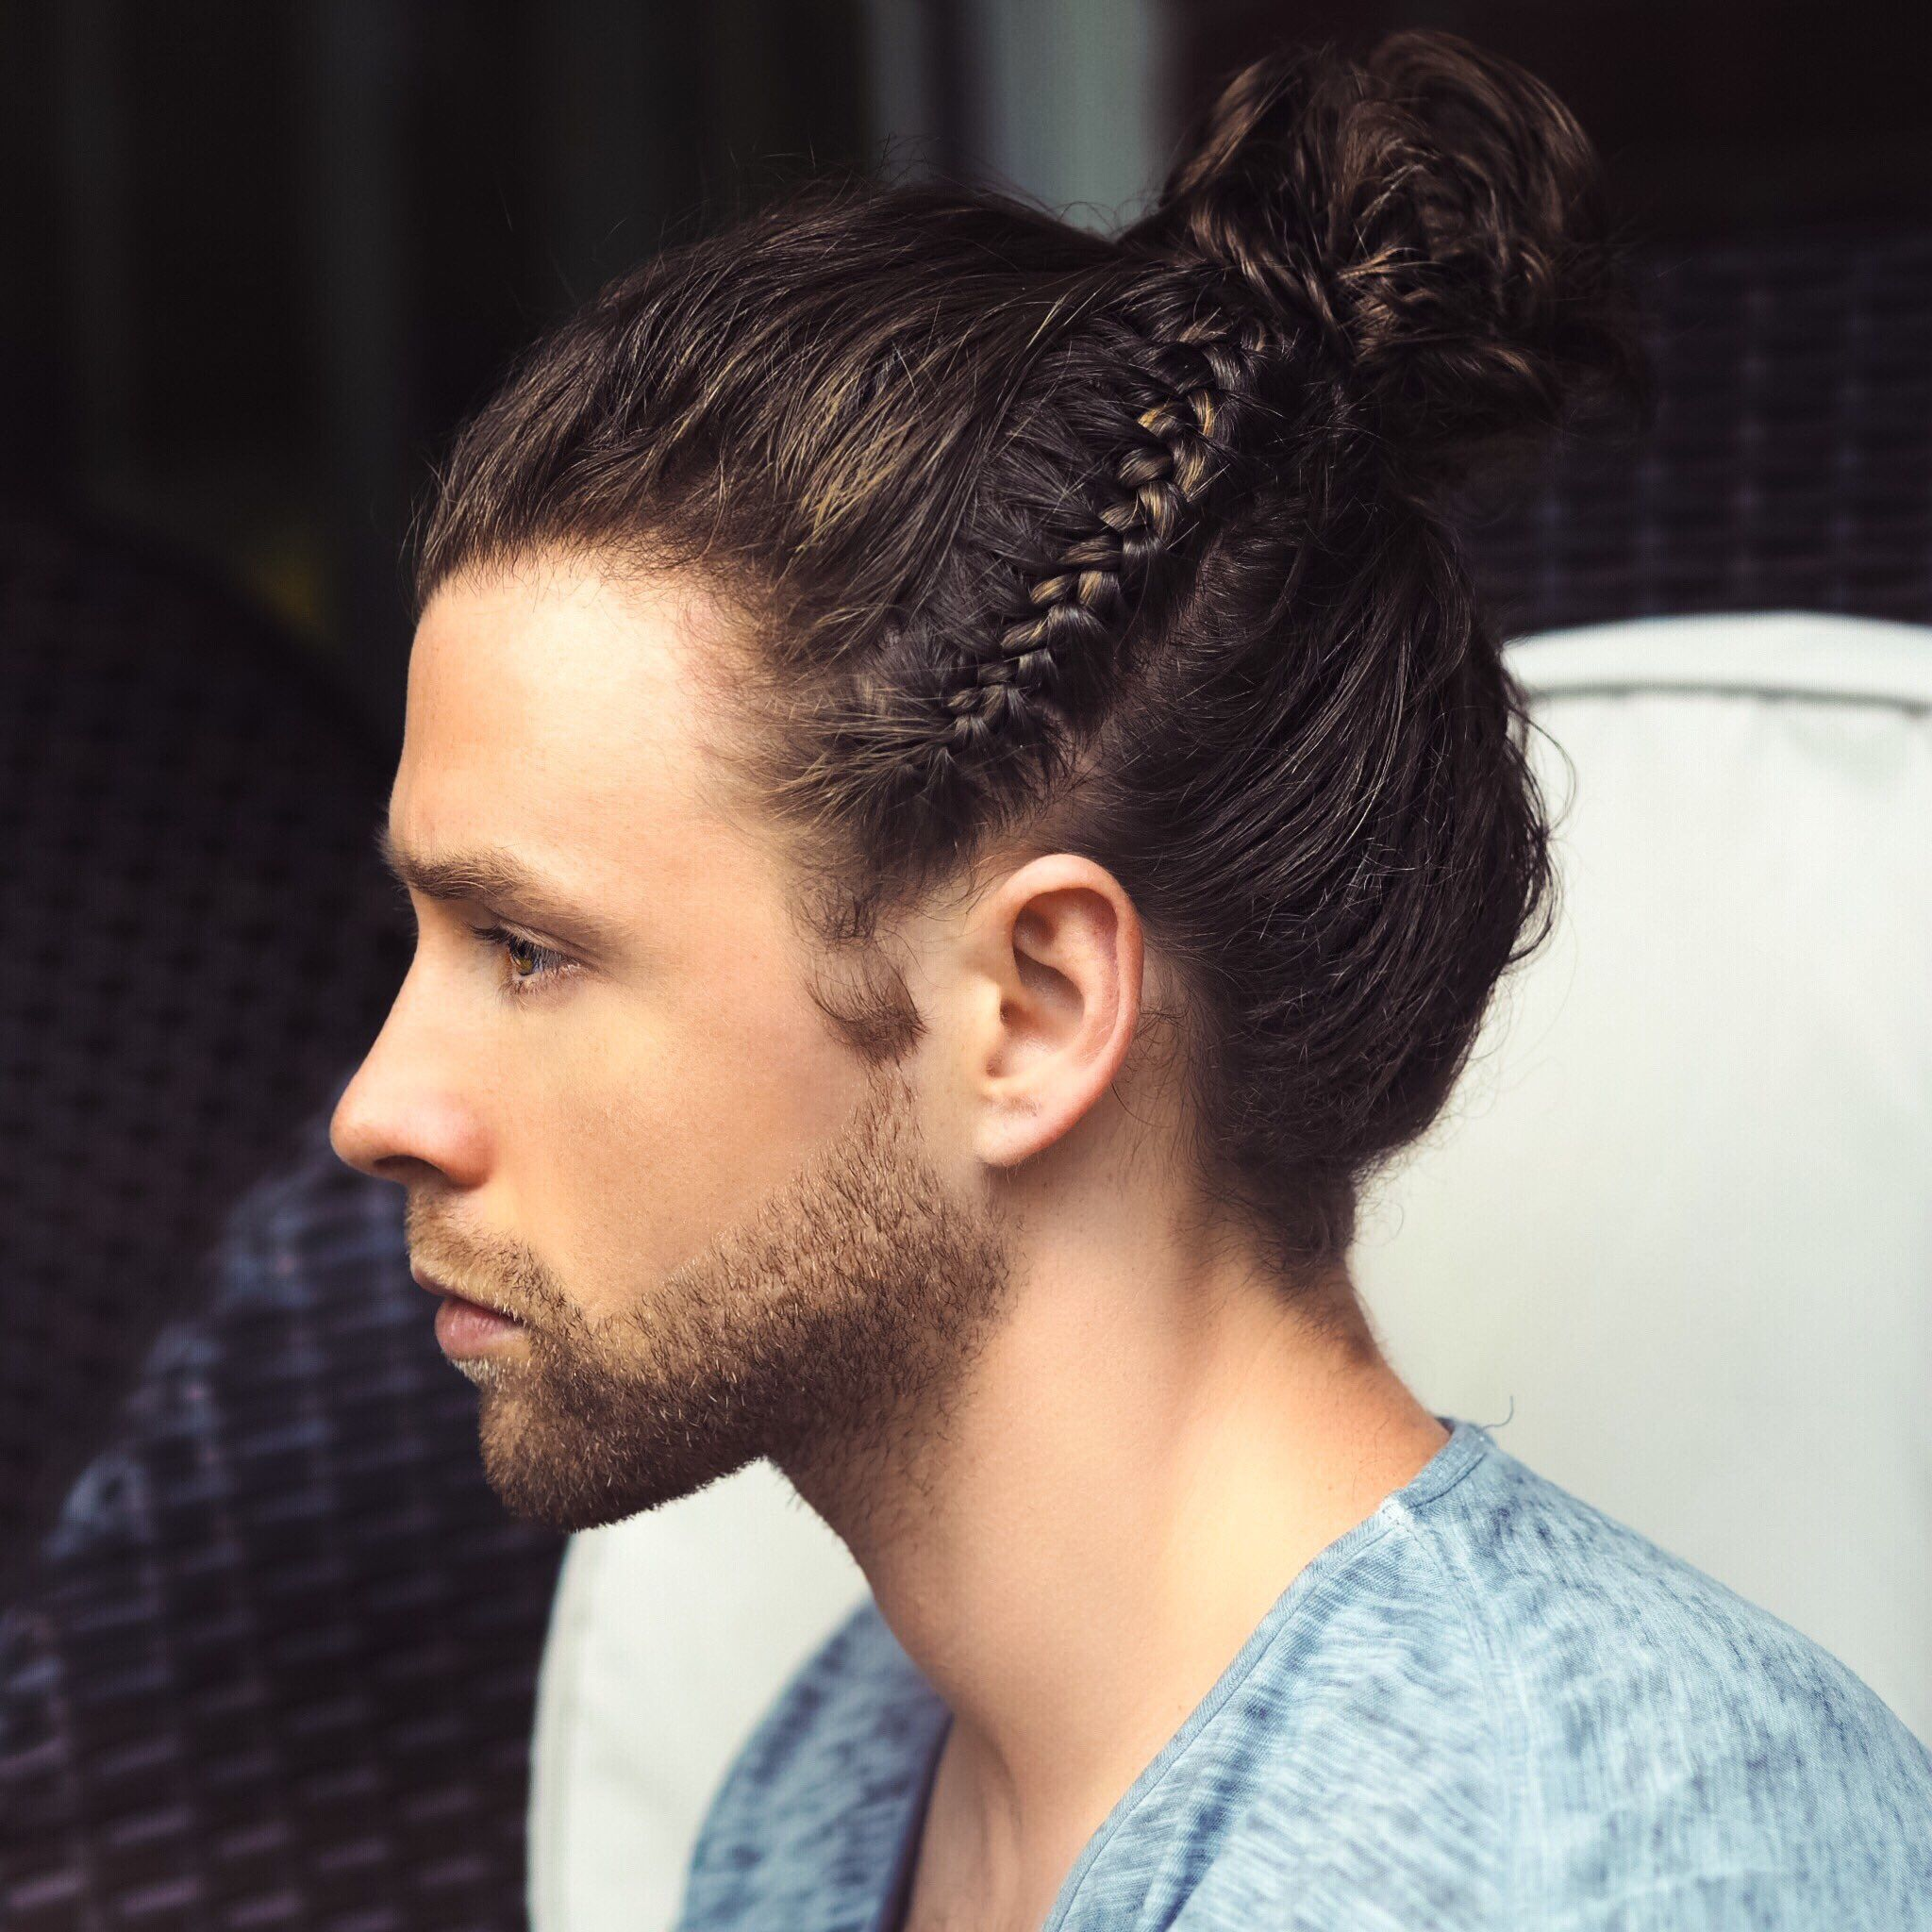 Pin By Abdelrhman Ayman On Haarstijlen In 2020 Long Hair Styles Hair Styles Mens Braids Hairstyles